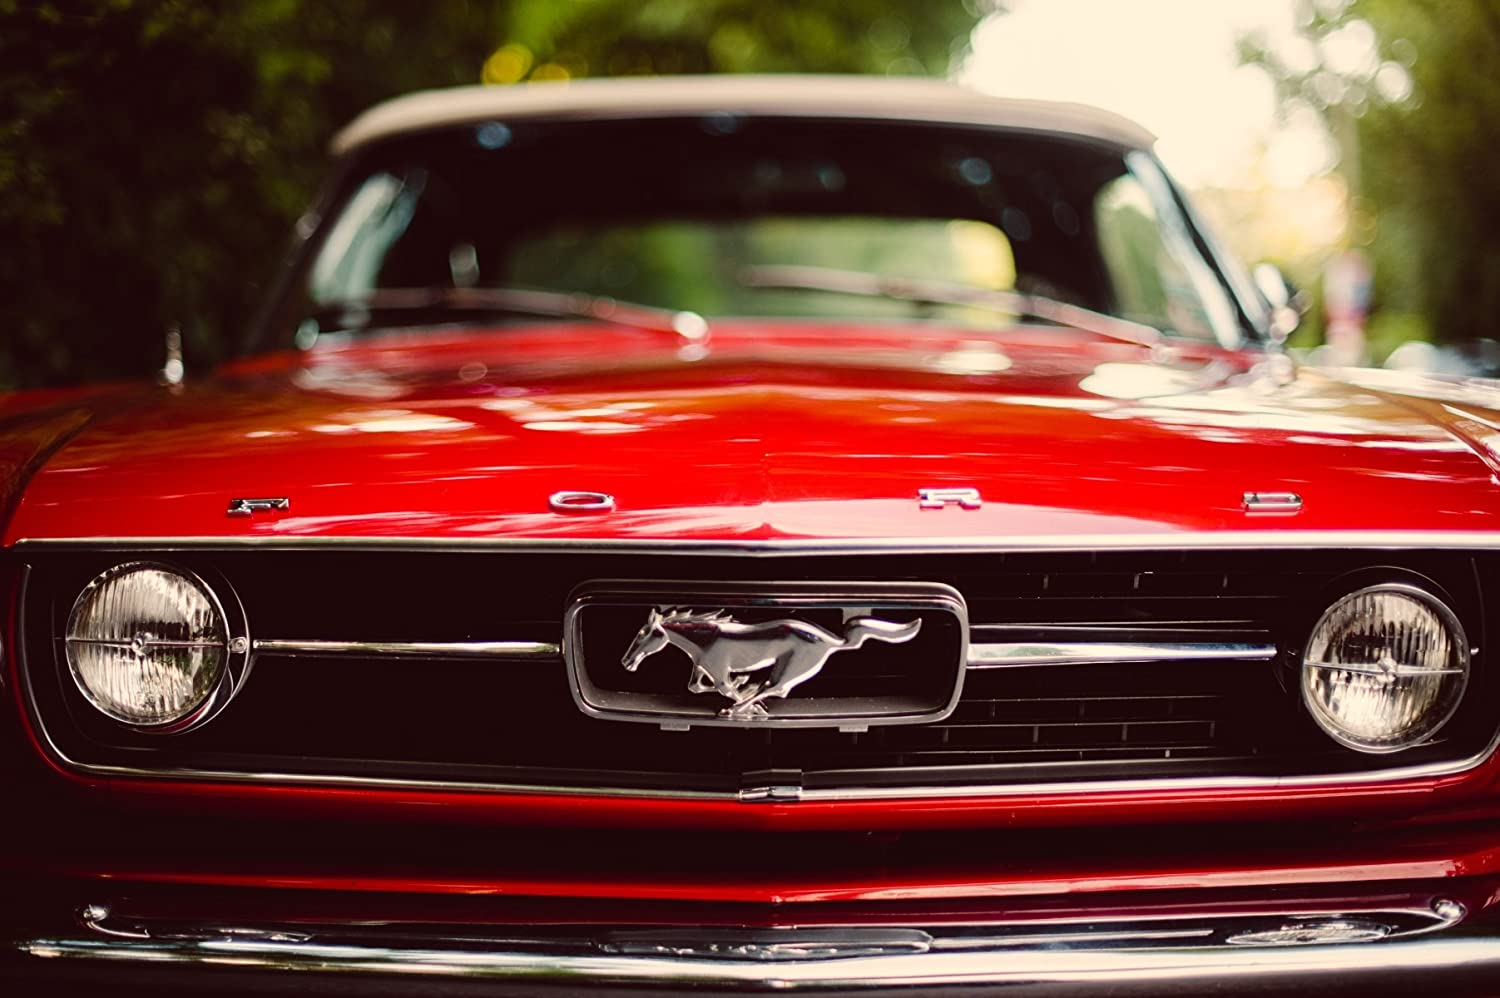 Inspired Walls Ford Mustang Vintage Car Poster géant – A5 A4 A3 A2 A1 A0 Tailles Inspired Walls®